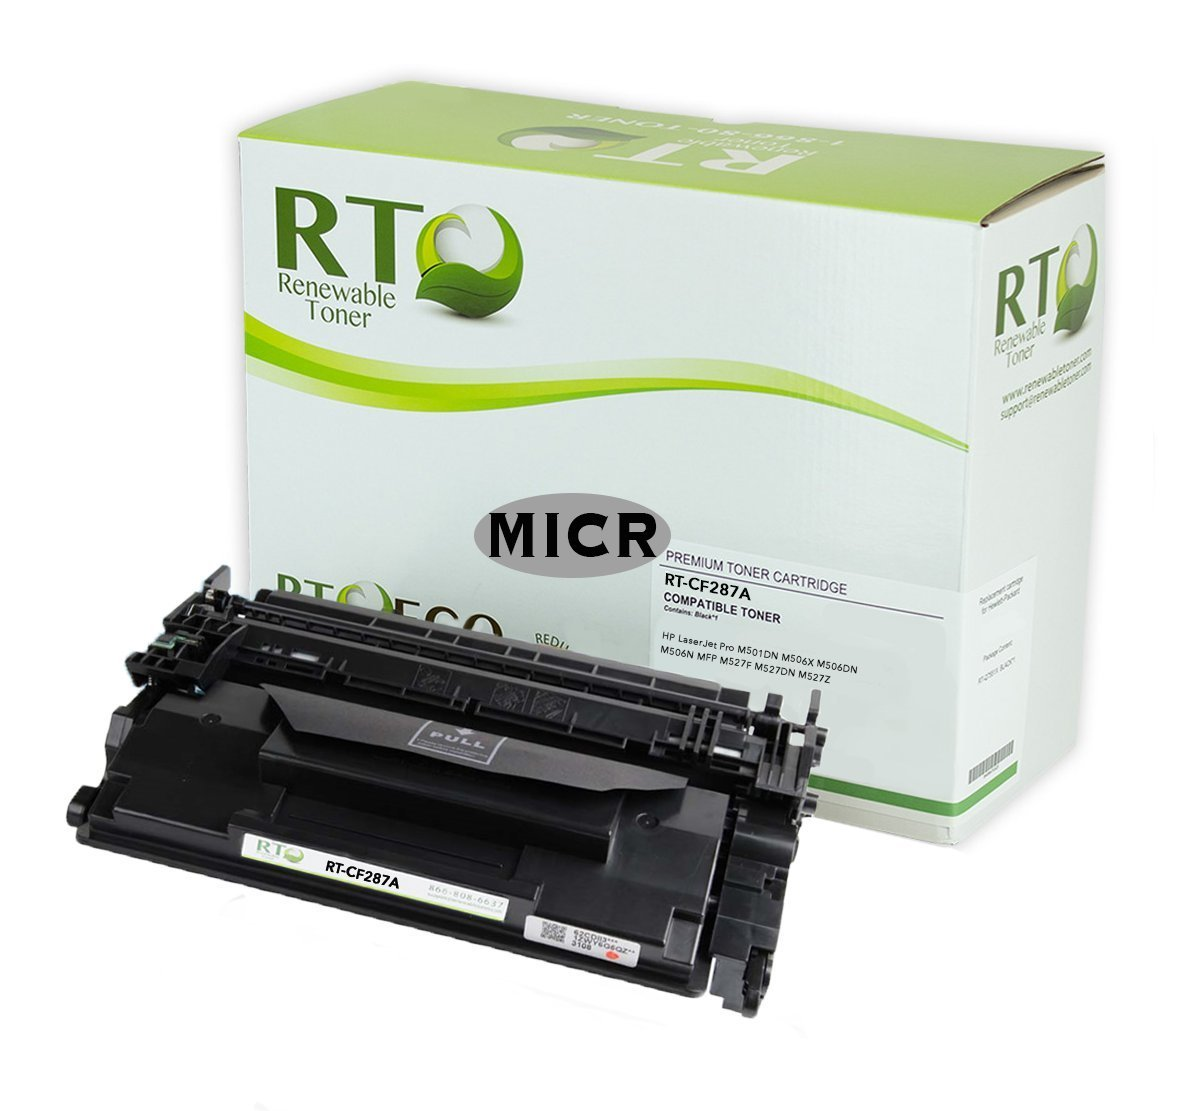 Renewable Toner MICR Toner 9k Yield Compatible with HP M506